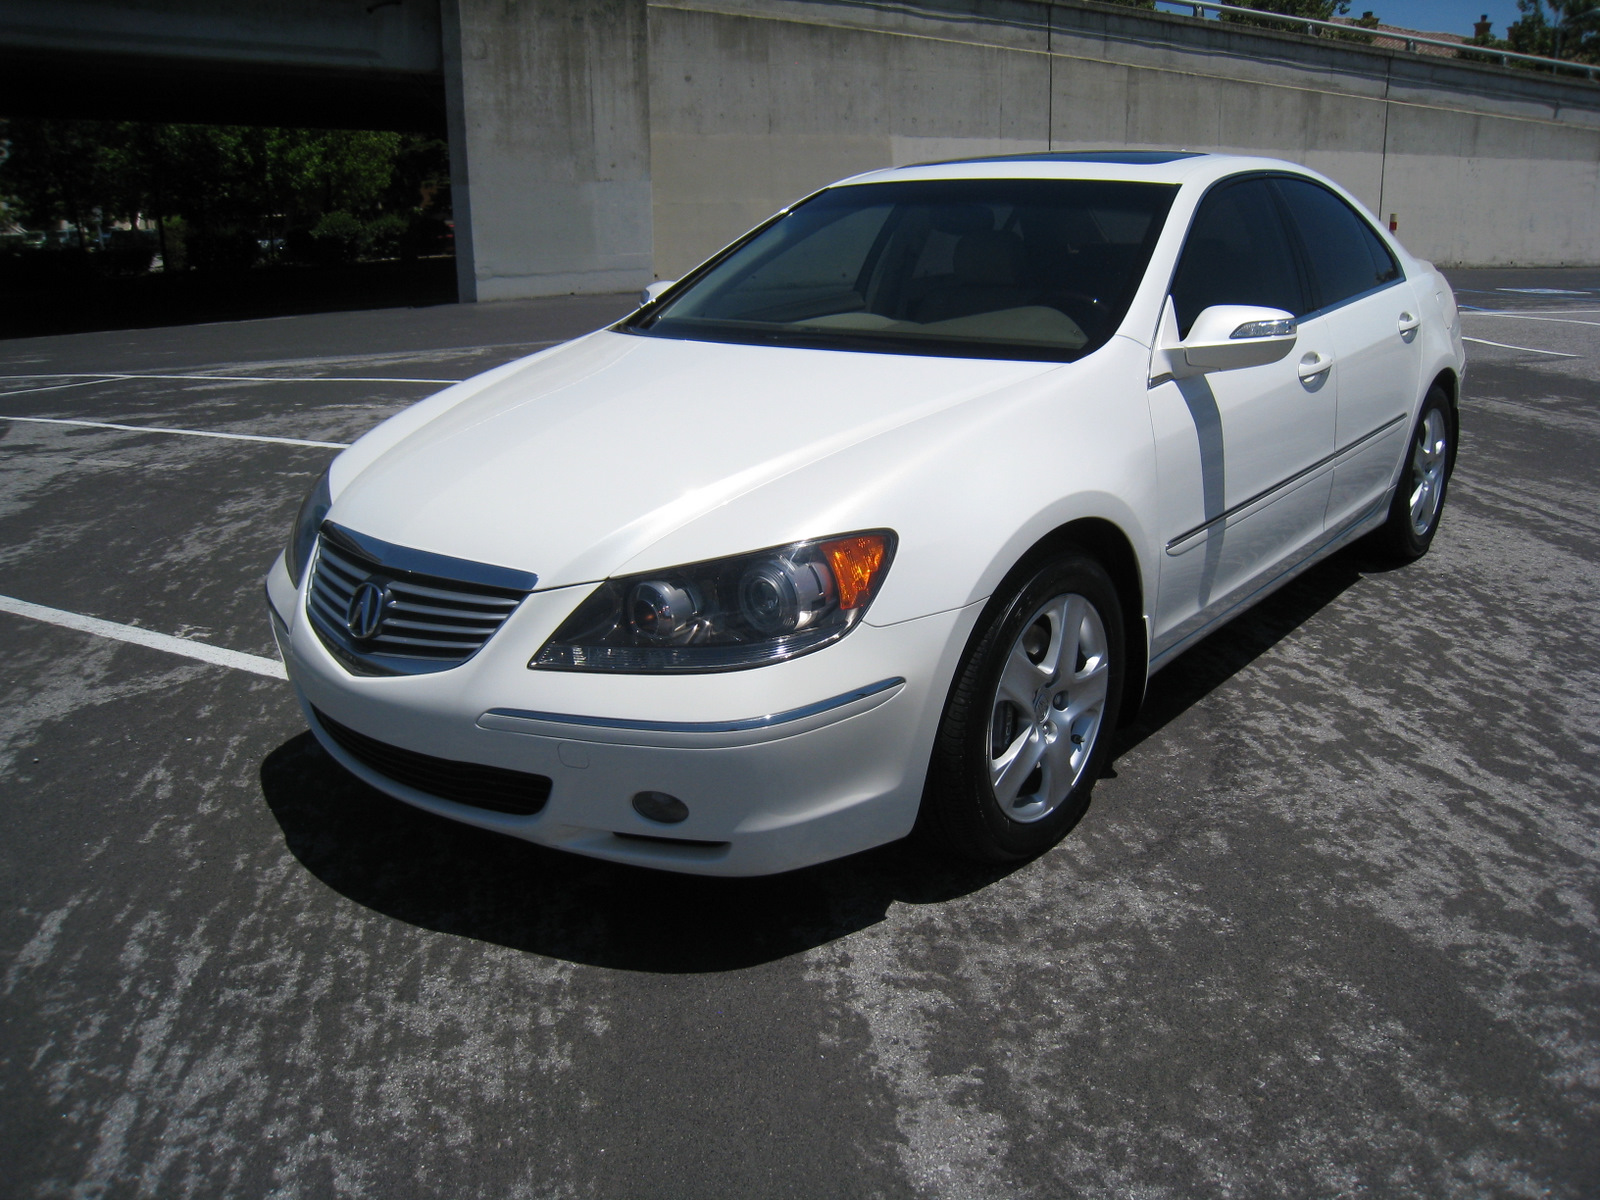 SOLD 2005 White/Beige Acura RL @ Location: San Jose, CA @ - AcuraZine - Acura Enthusiast Community